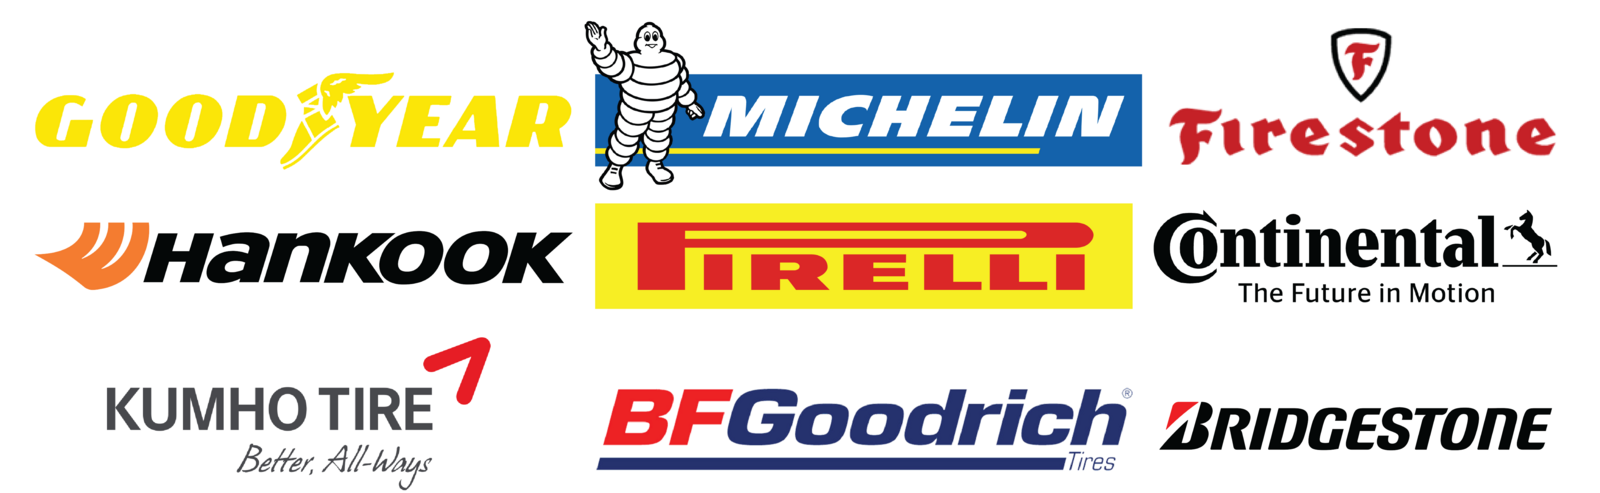 We proudly offer products from: Goodyear, Michelin, Firestone, Hankook, Pirelli, Continental, Kumho Tire, BFGoodrich and Bridgestone.